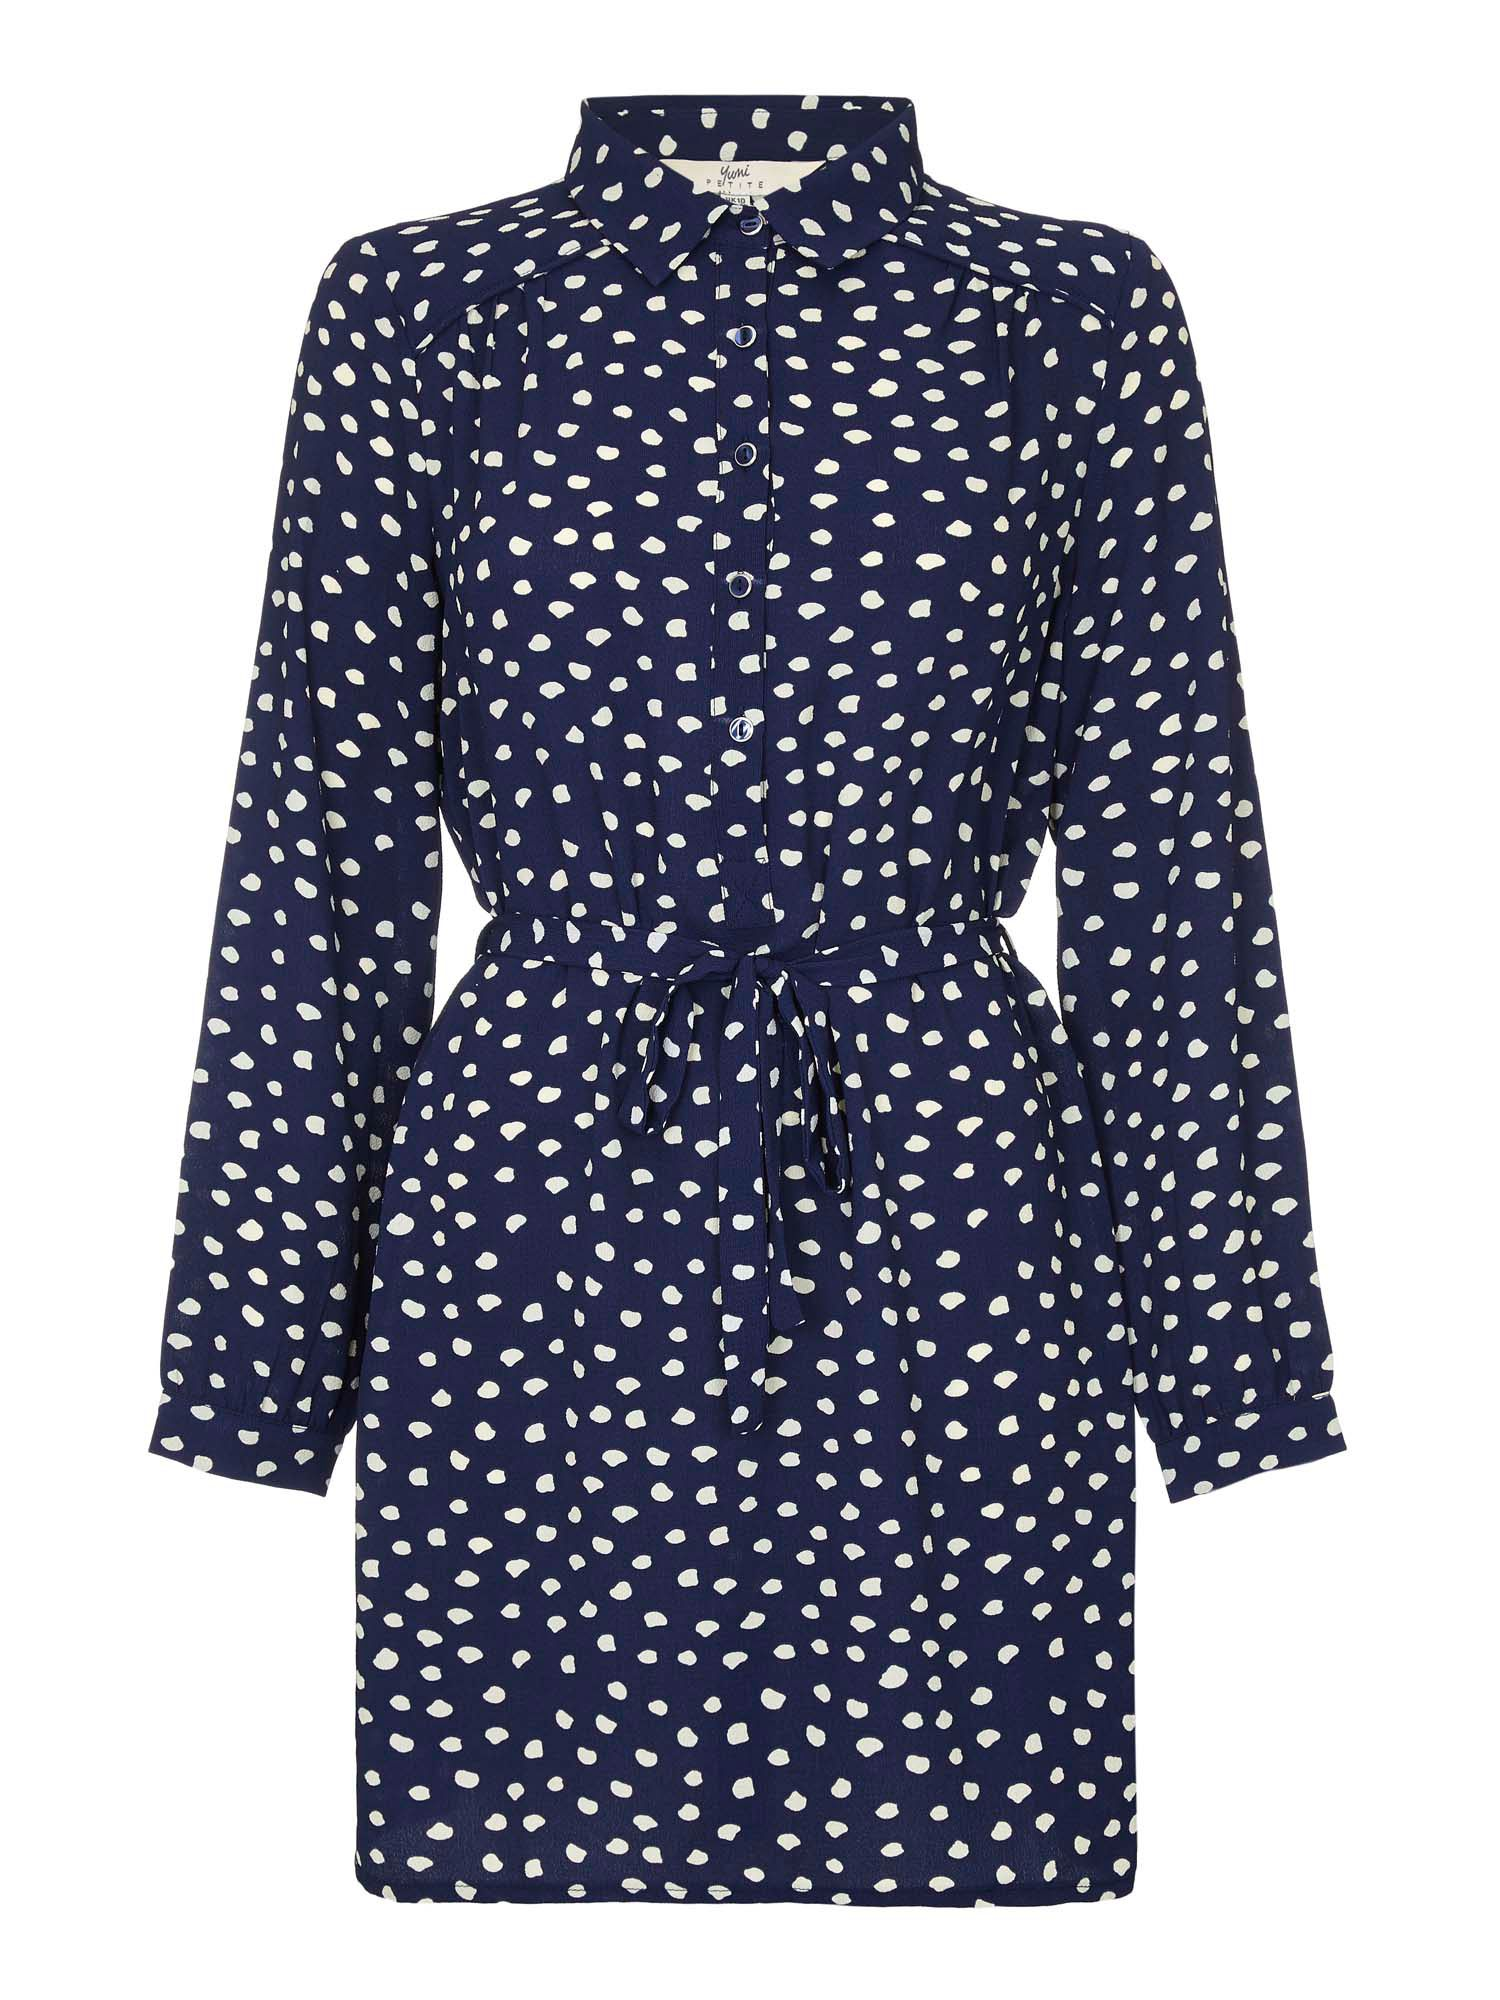 Yumi Polka Dot Print Shirt Dress, Blue